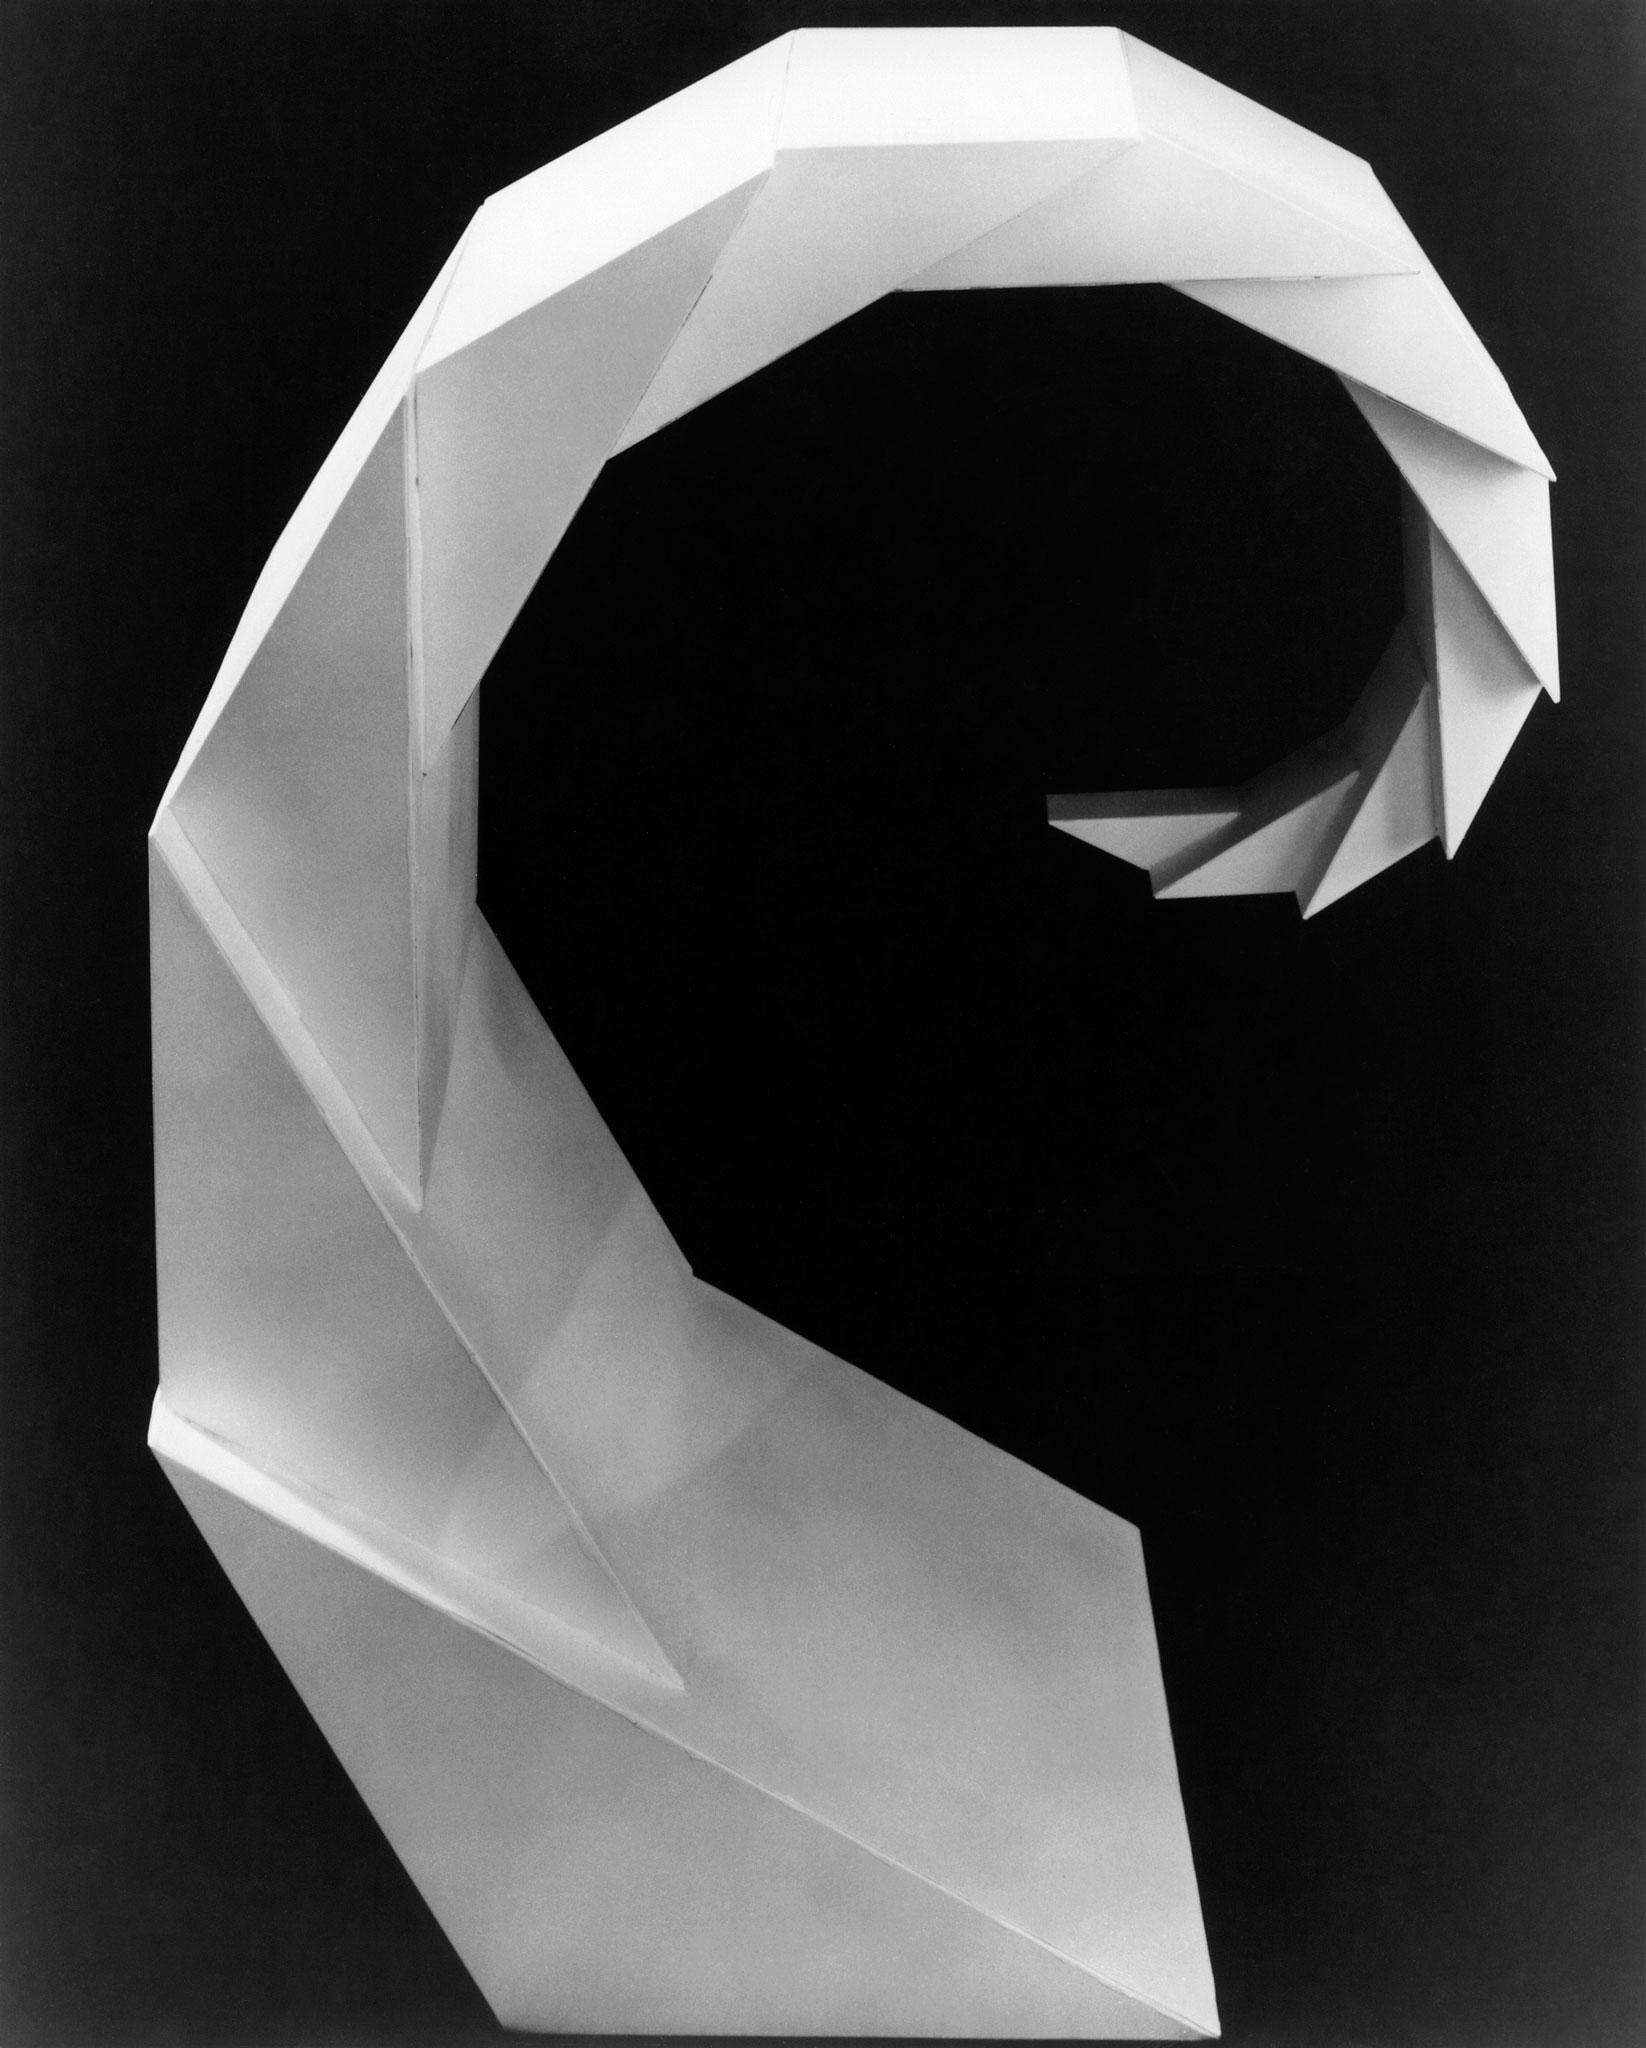 black and white image of geometric, faceted spiraling sculpture